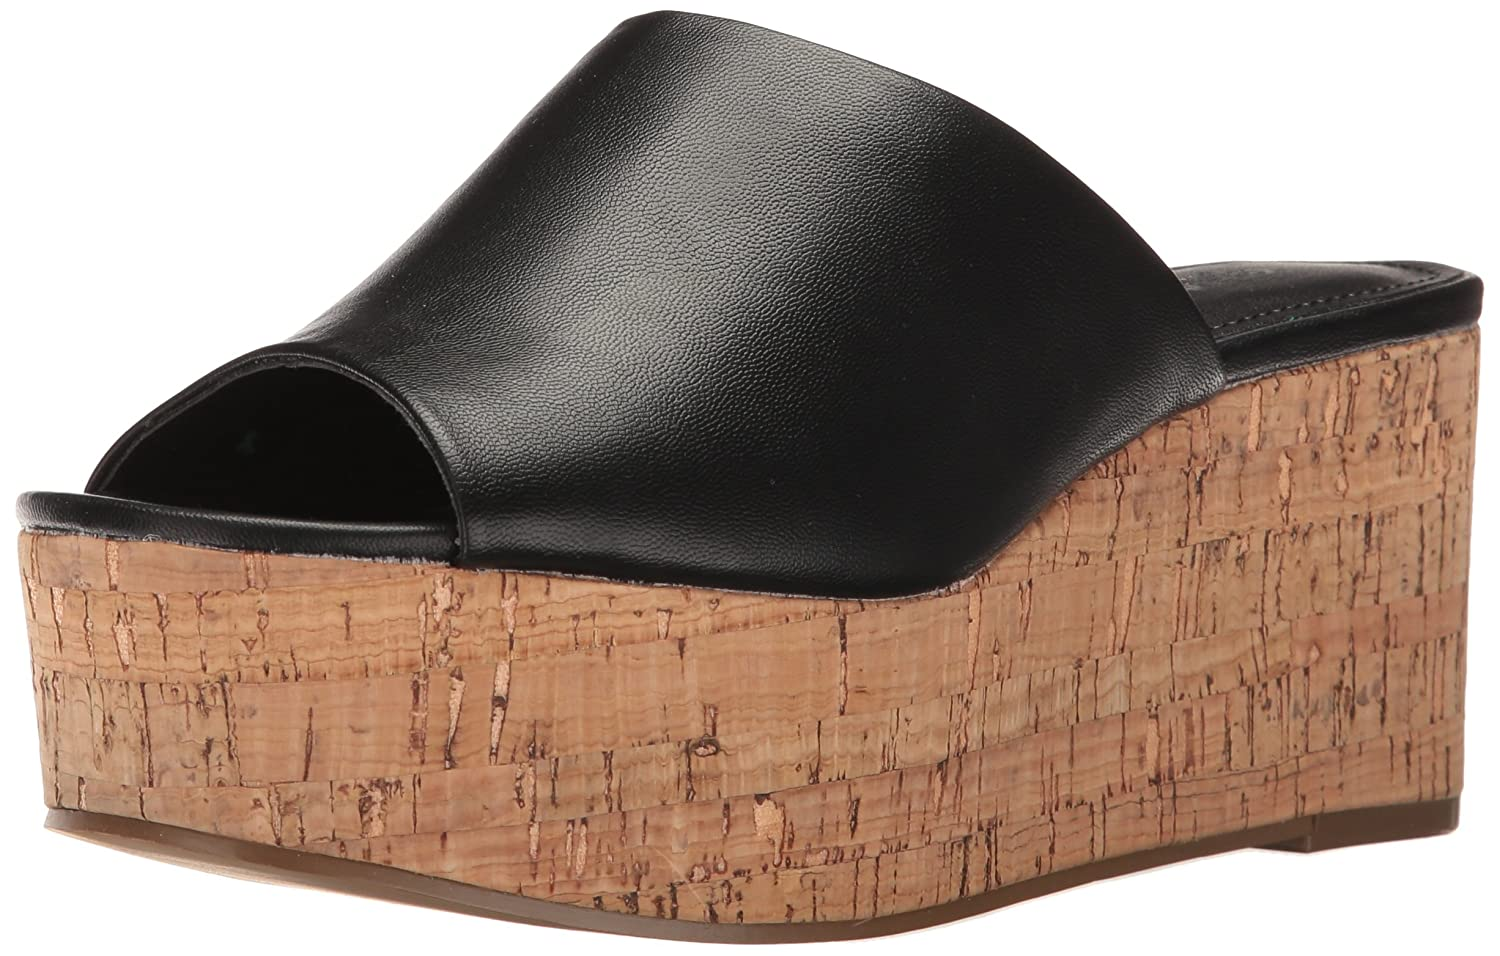 Charles by Charles David Women's Crisp Wedge Sandal B01LYYHZWM 7.5 B(M) US|Black